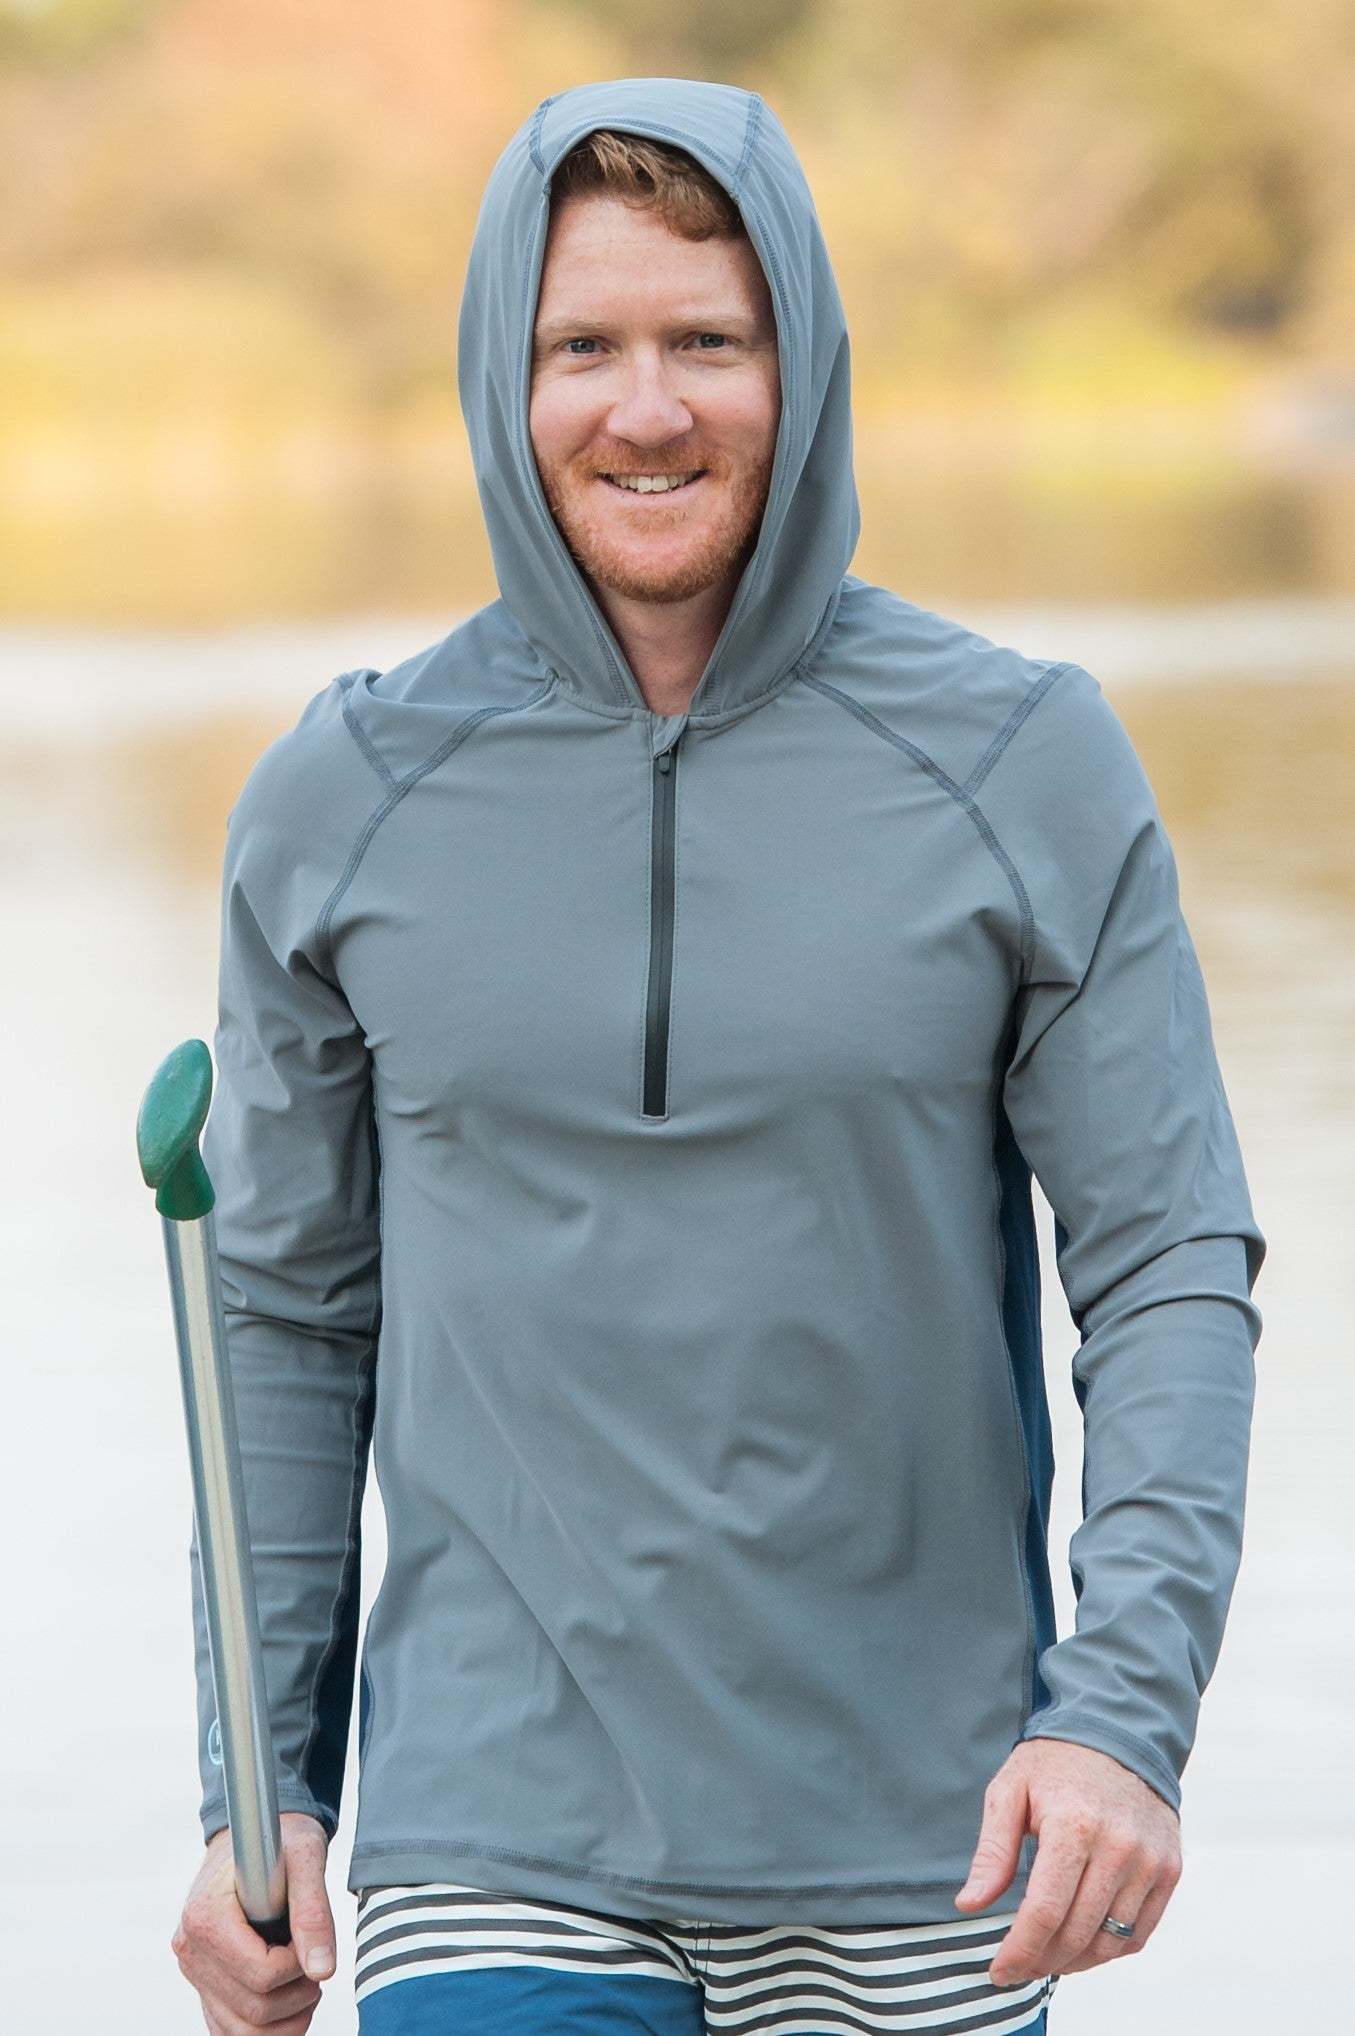 Moon Rock with Deep Sea Panel - Mens Swim Shirt / Rash Guard with a Hood